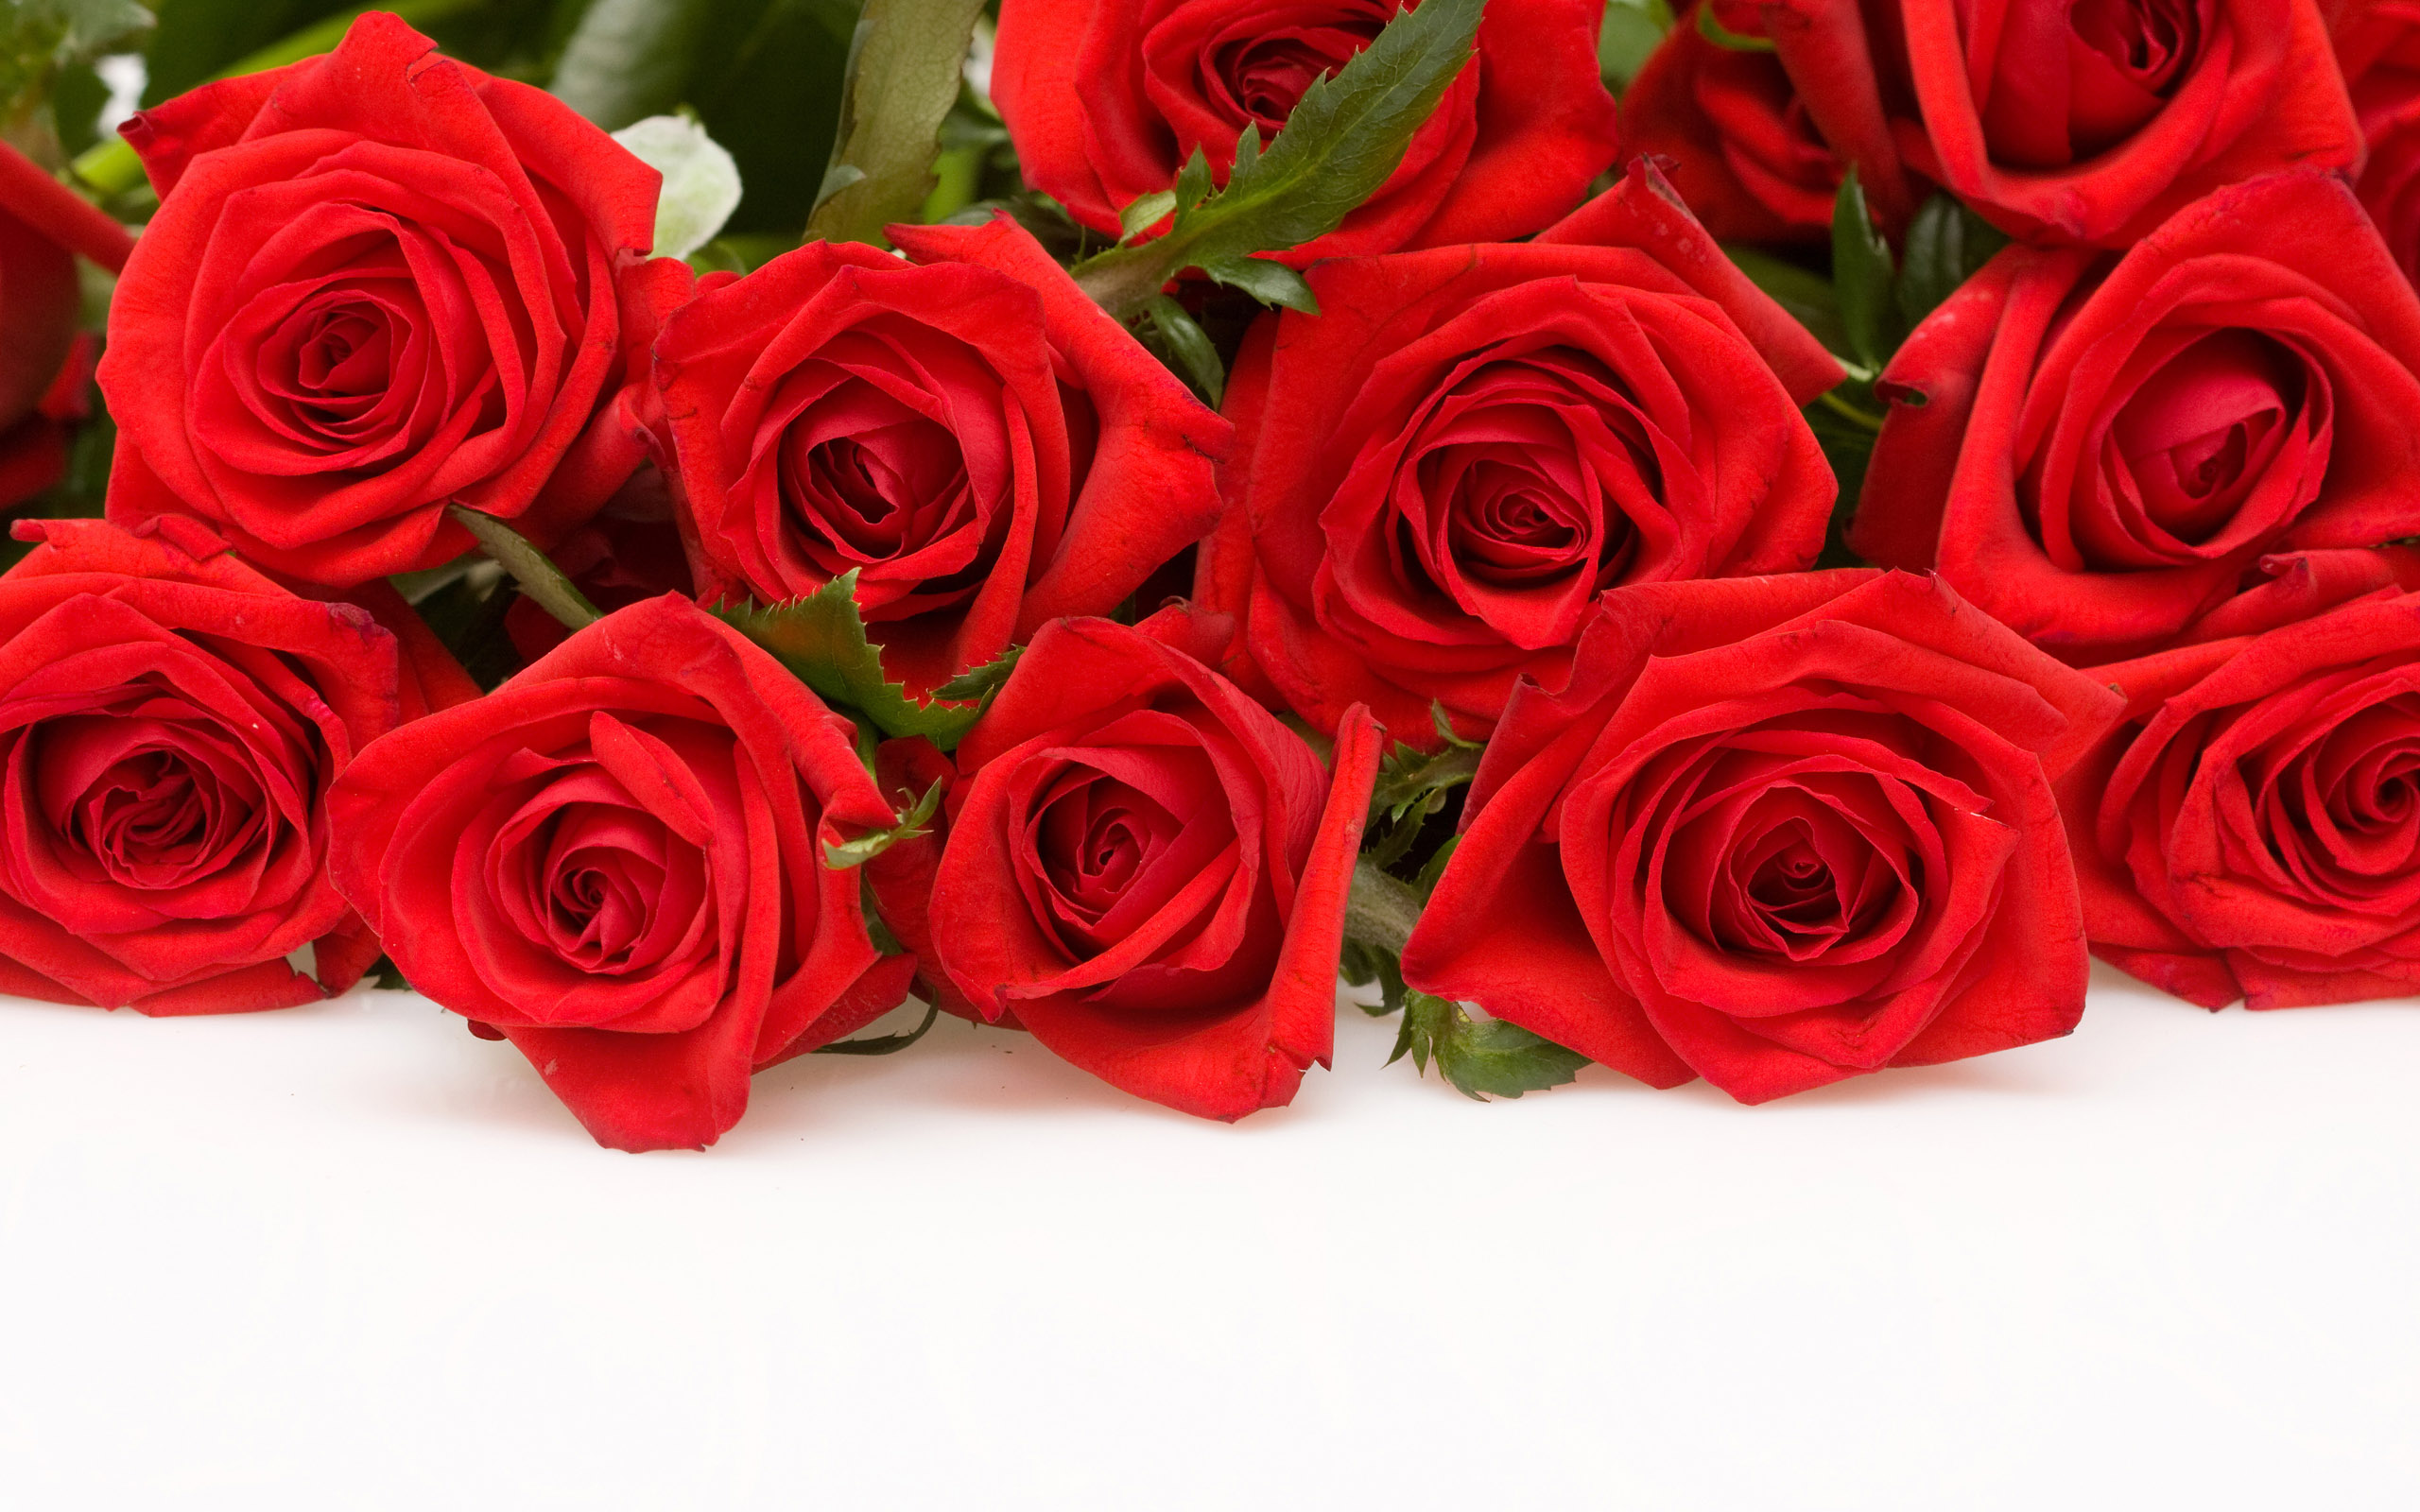 Red Abstract Roses Awesome Bouquet Shift 690898 Wallpaper wallpaper